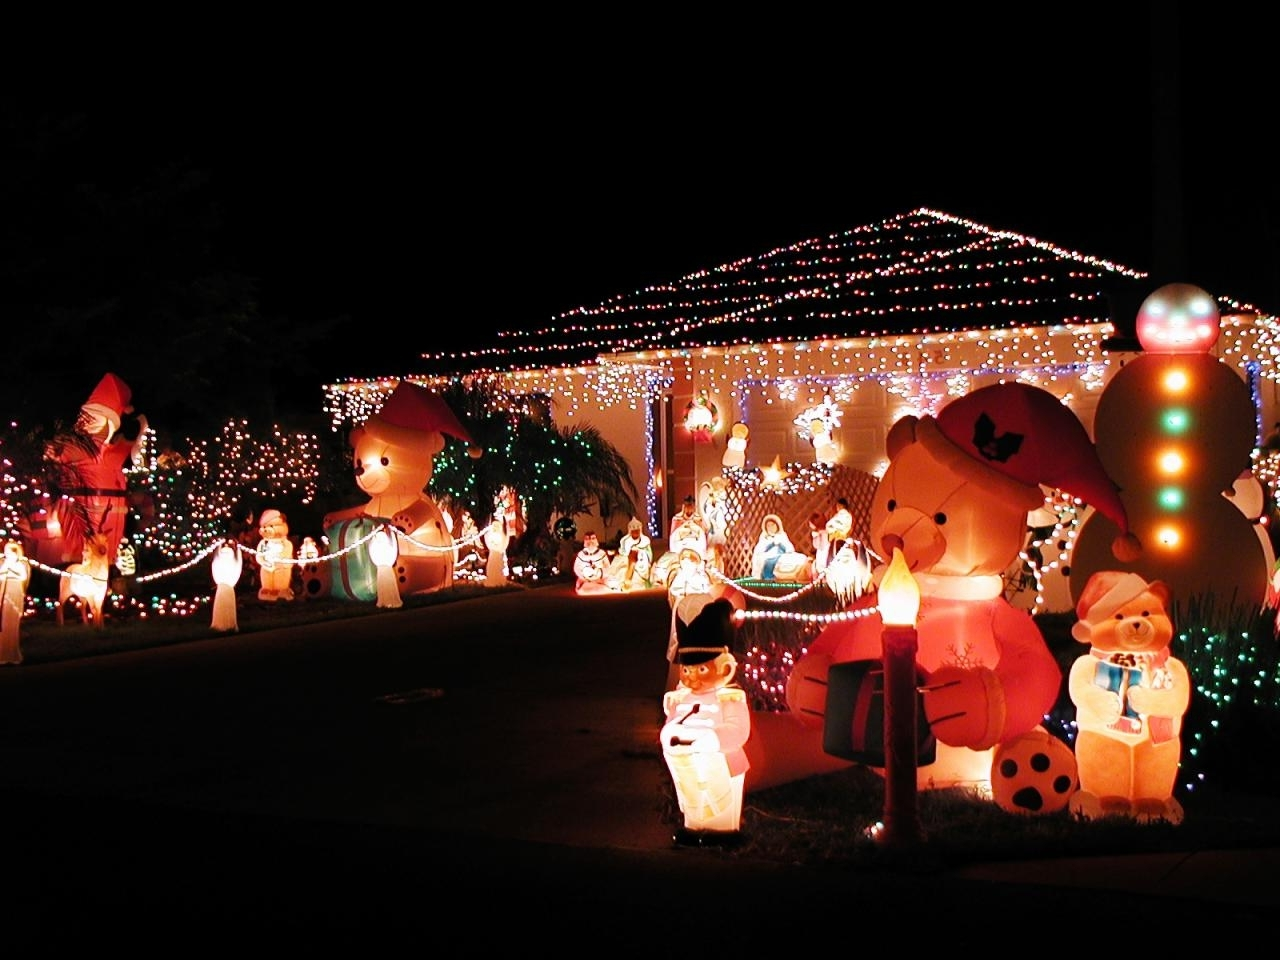 Outdoor Hanging Xmas Lights Within Well Known Christmas Lighting Displays With A Theme (View 16 of 20)